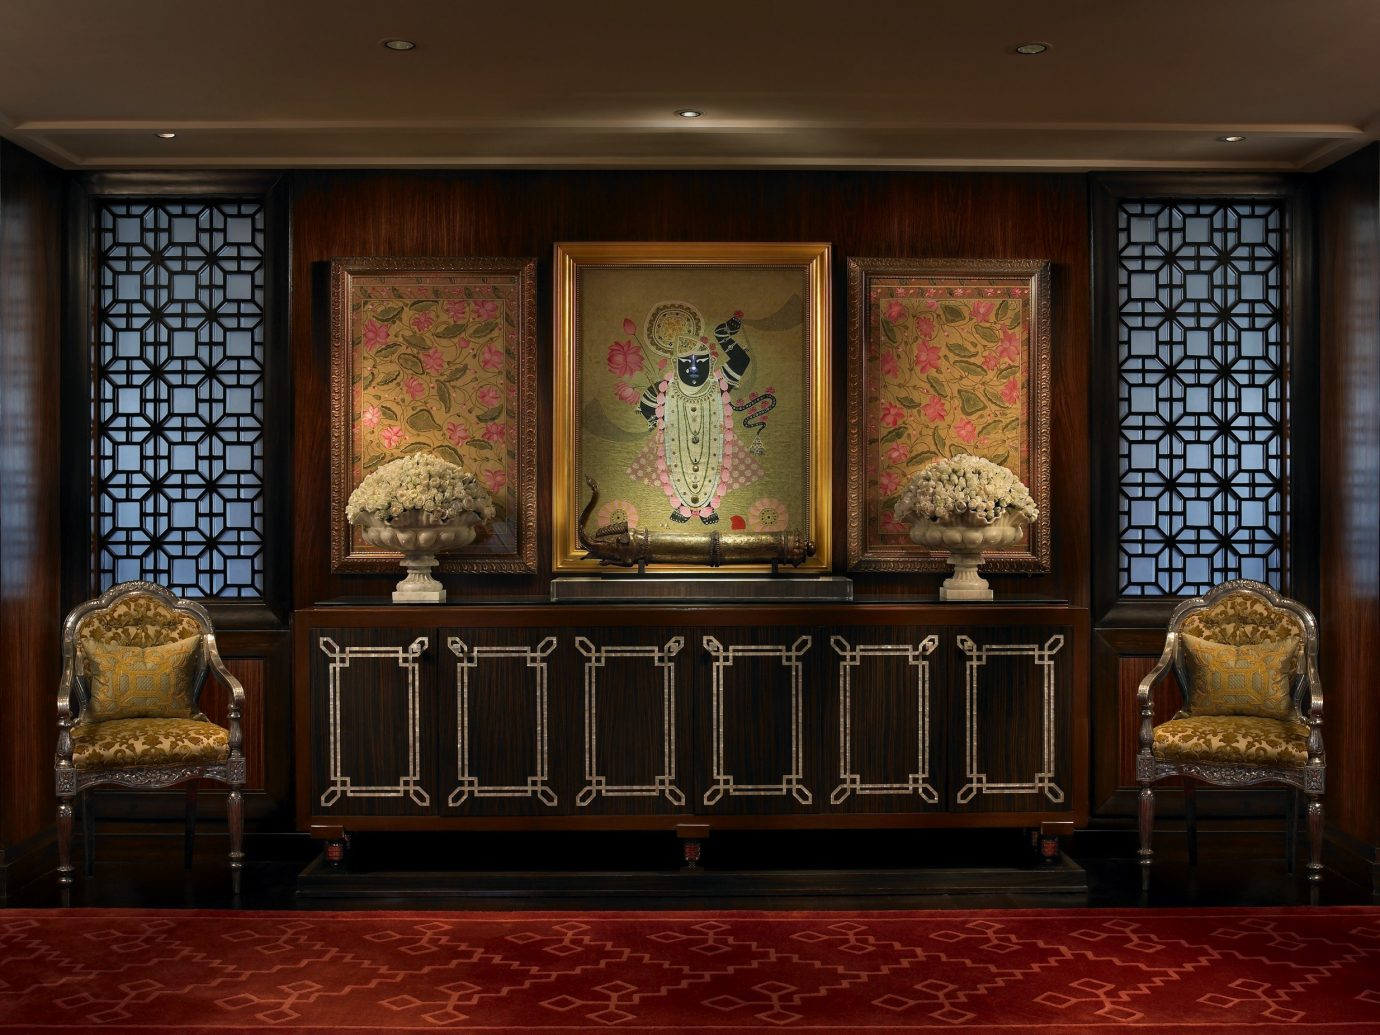 Hotels Luxury Travel indoor ceiling furniture wall interior design room Lobby living room window decorated several